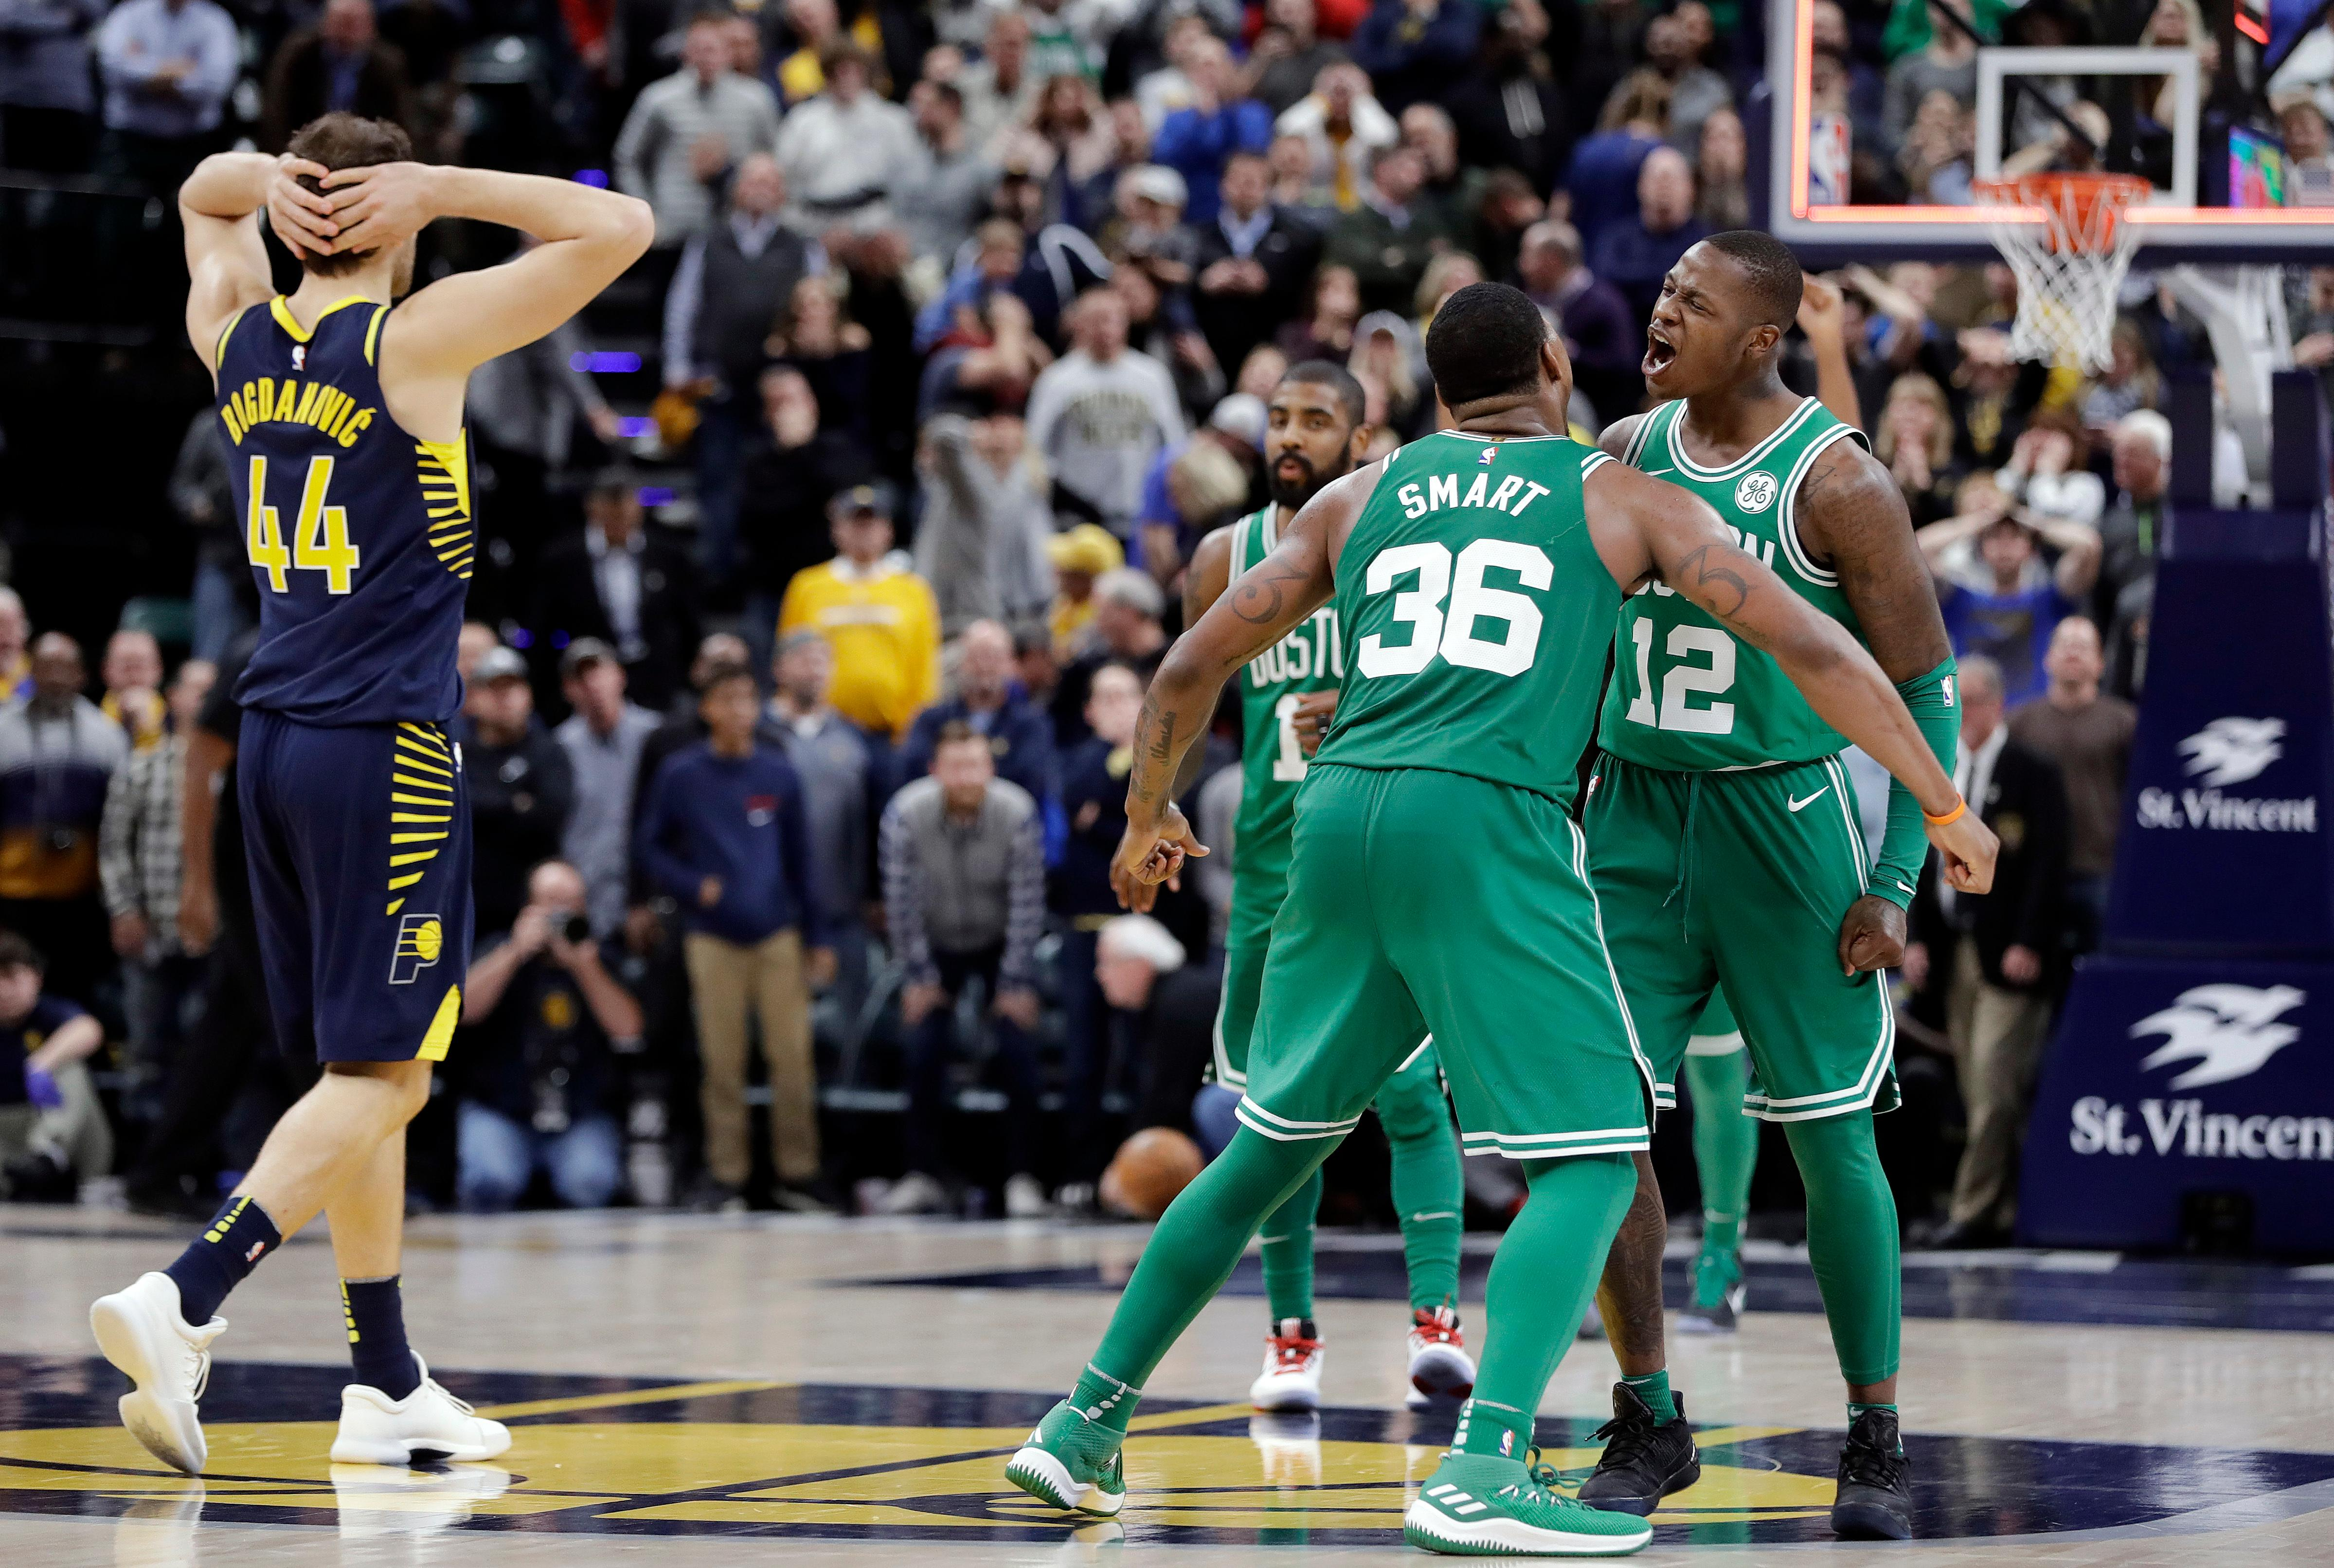 Boston Celtics' Terry Rozier (12) and Marcus Smart (36) celebrate as Indiana Pacers' Bojan Bogdanovic (44) watches after Boston defeated Indiana, 112-111, in an NBA basketball game, Monday, Dec. 18, 2017, in Indianapolis. (AP Photo/Darron Cummings)